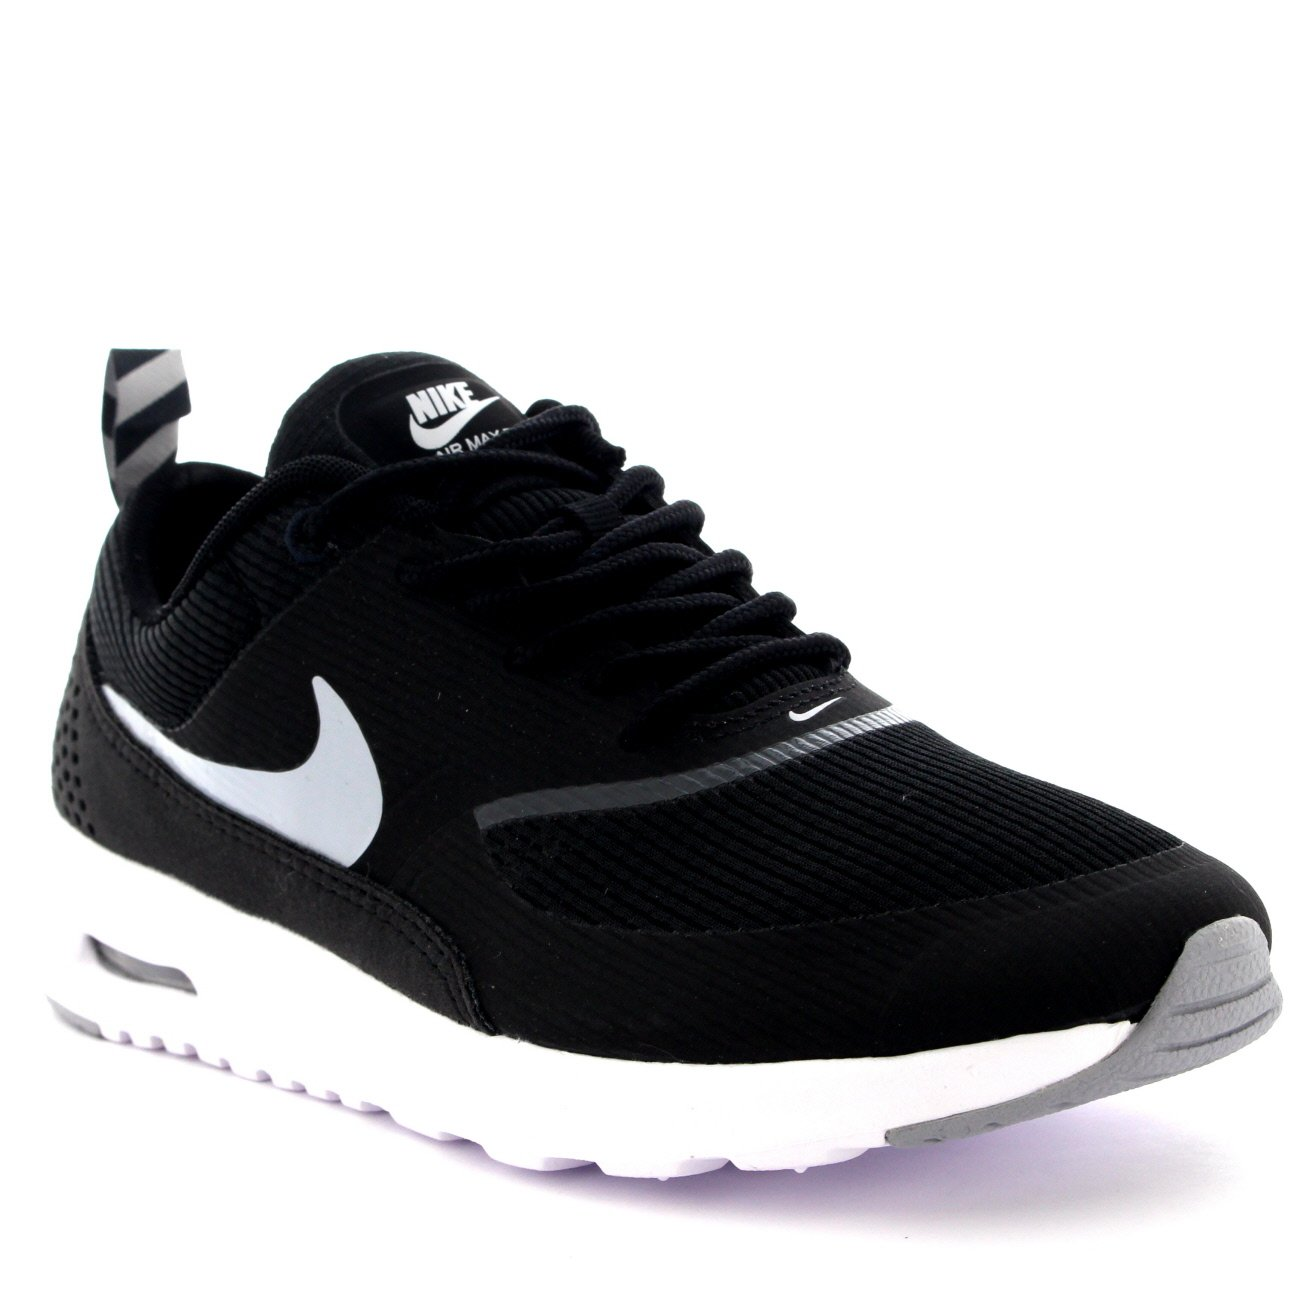 NIKE Air Max Thea Women Sneakers BlackAnthraciteWhiteWolf Grey 599409 007 (Size: 7.5)